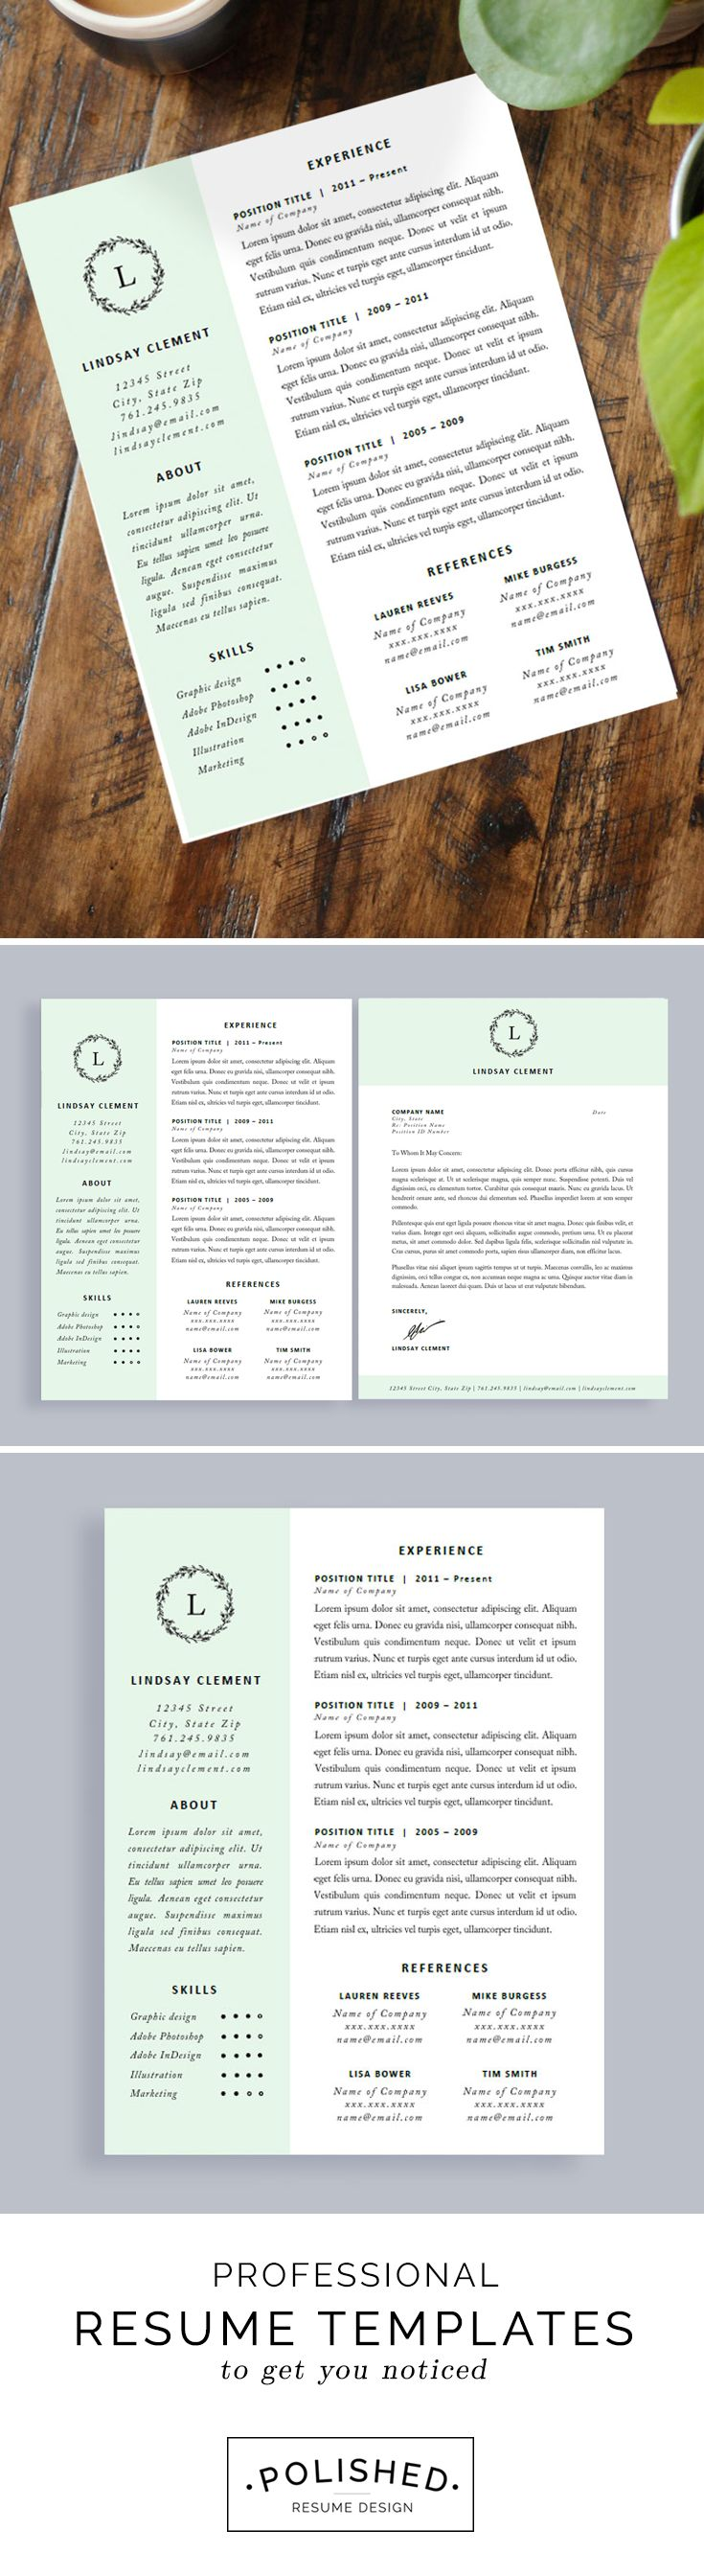 operations supervisor resume%0A Professional resume templates for Microsoft Word  Features   and   page  options plus a free